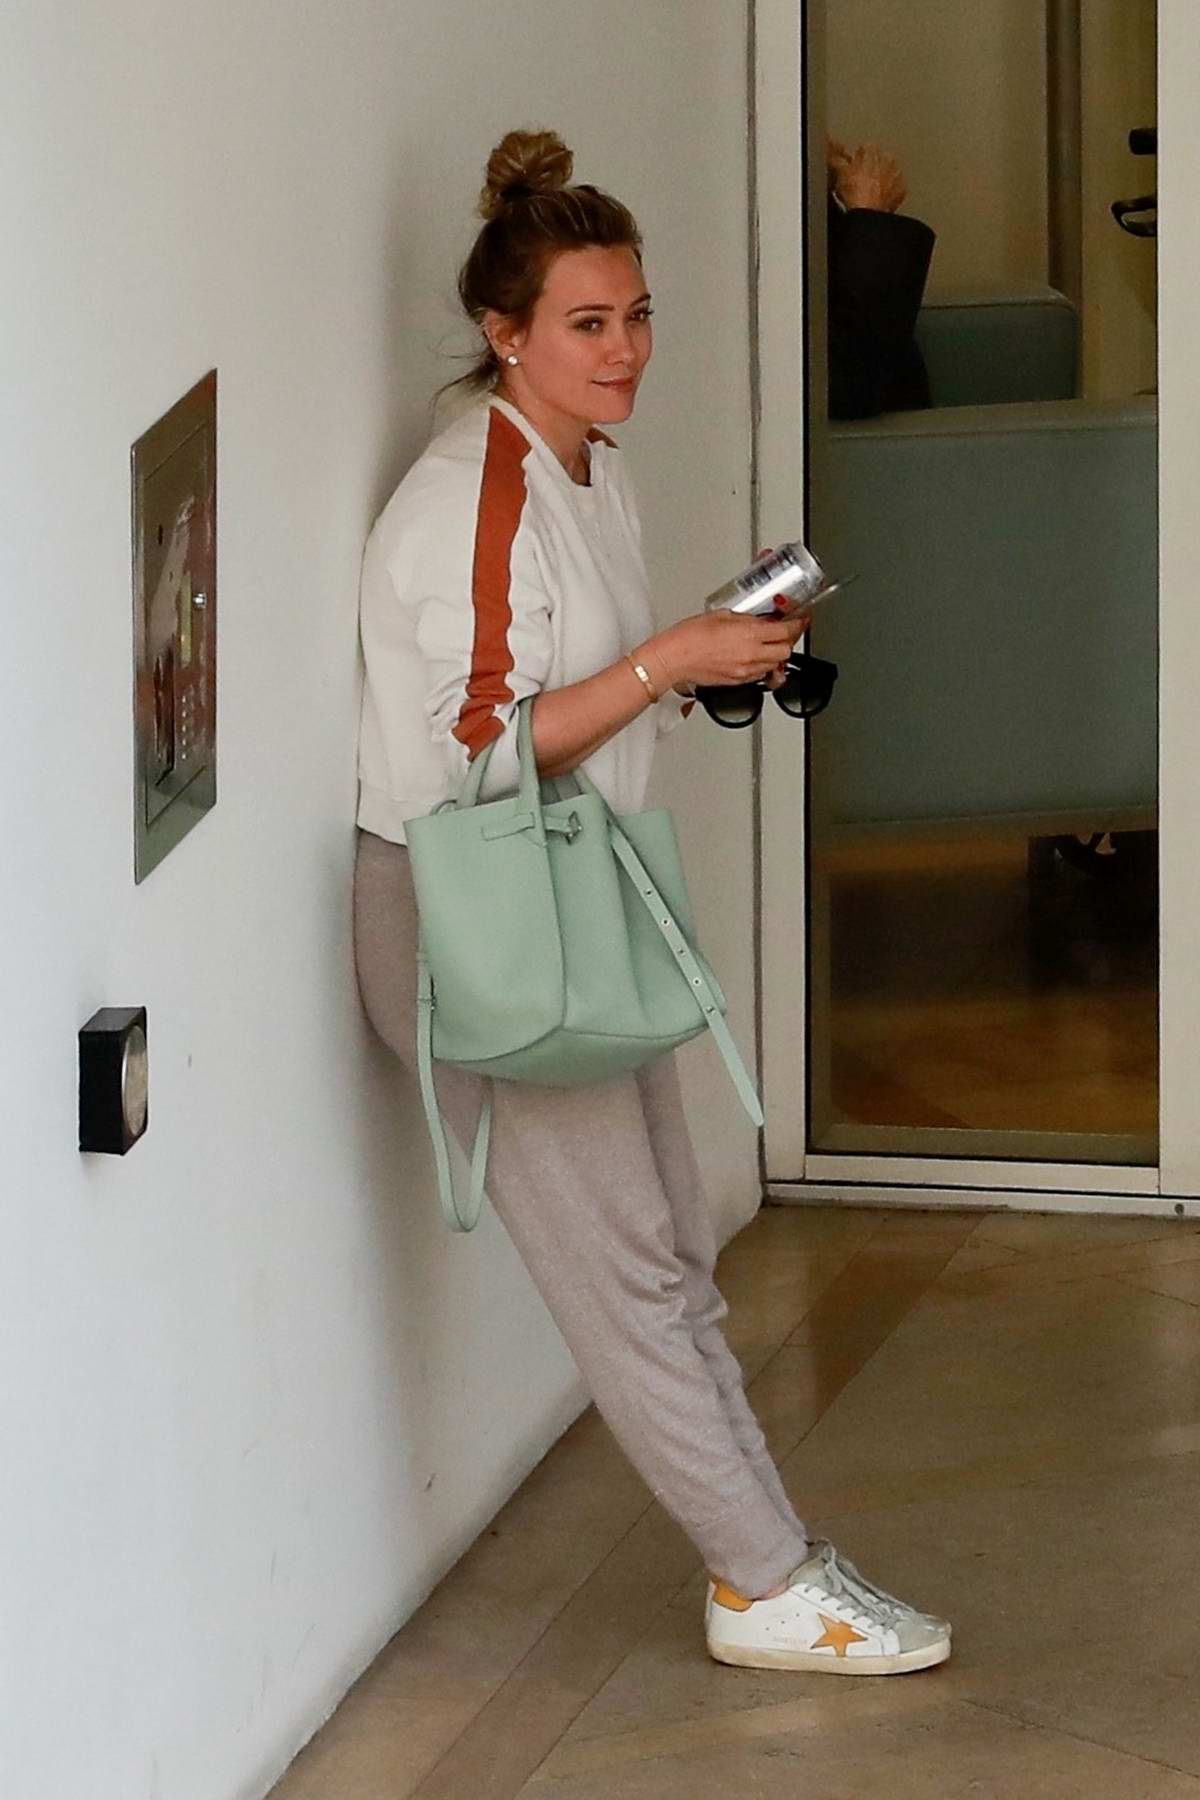 Hilary Duff waits at the valet for her car after a trip to a medical building in Beverly Hills, Los Angeles